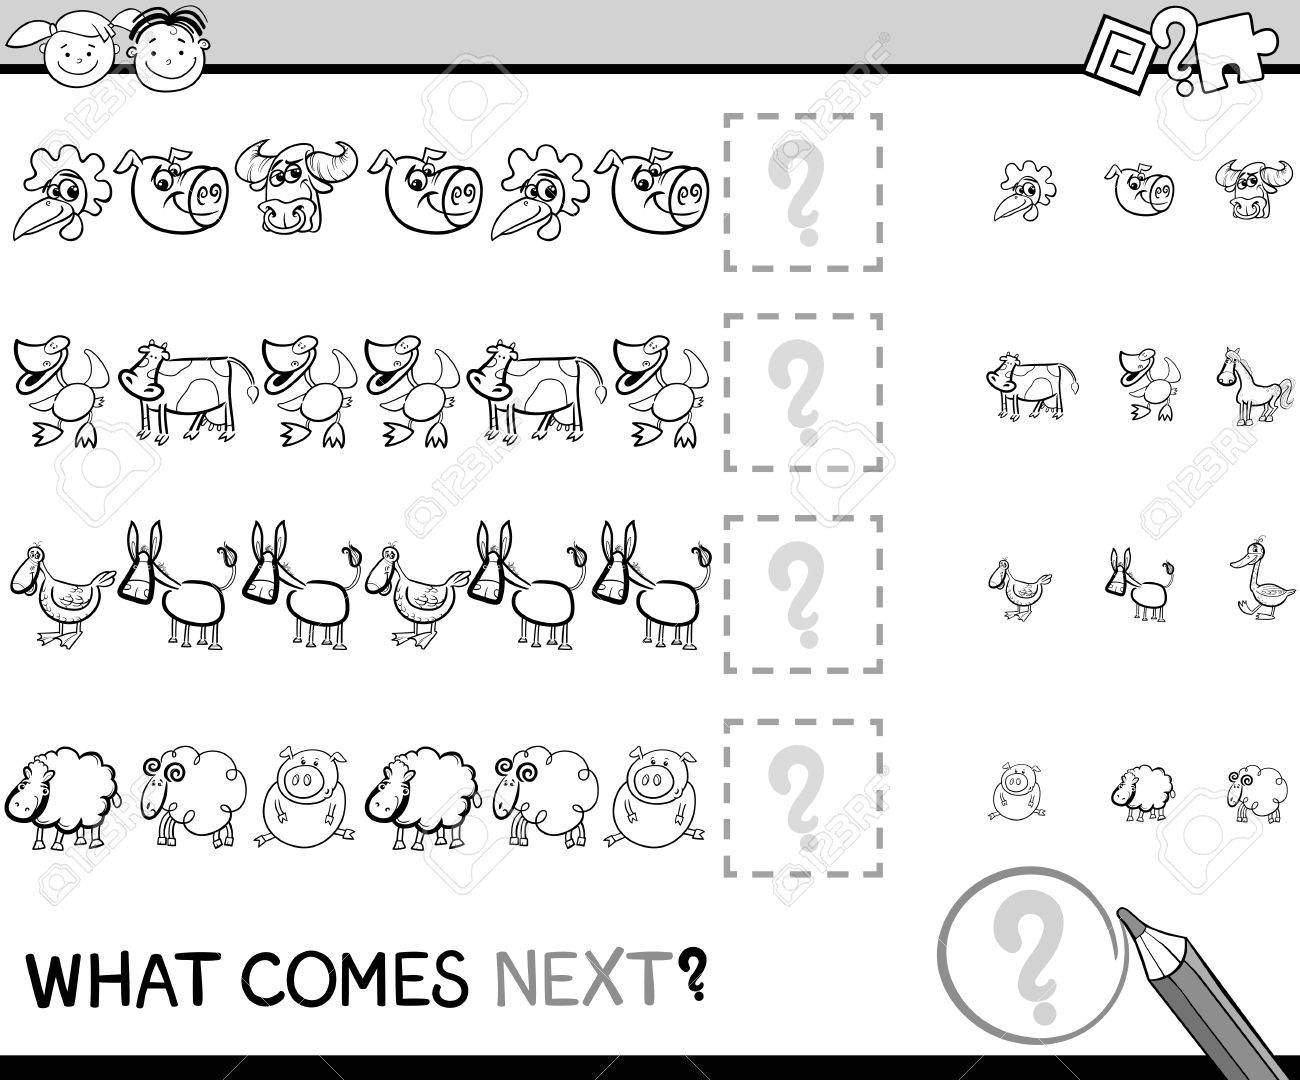 Black and White Cartoon Illustration of Completing the Pattern